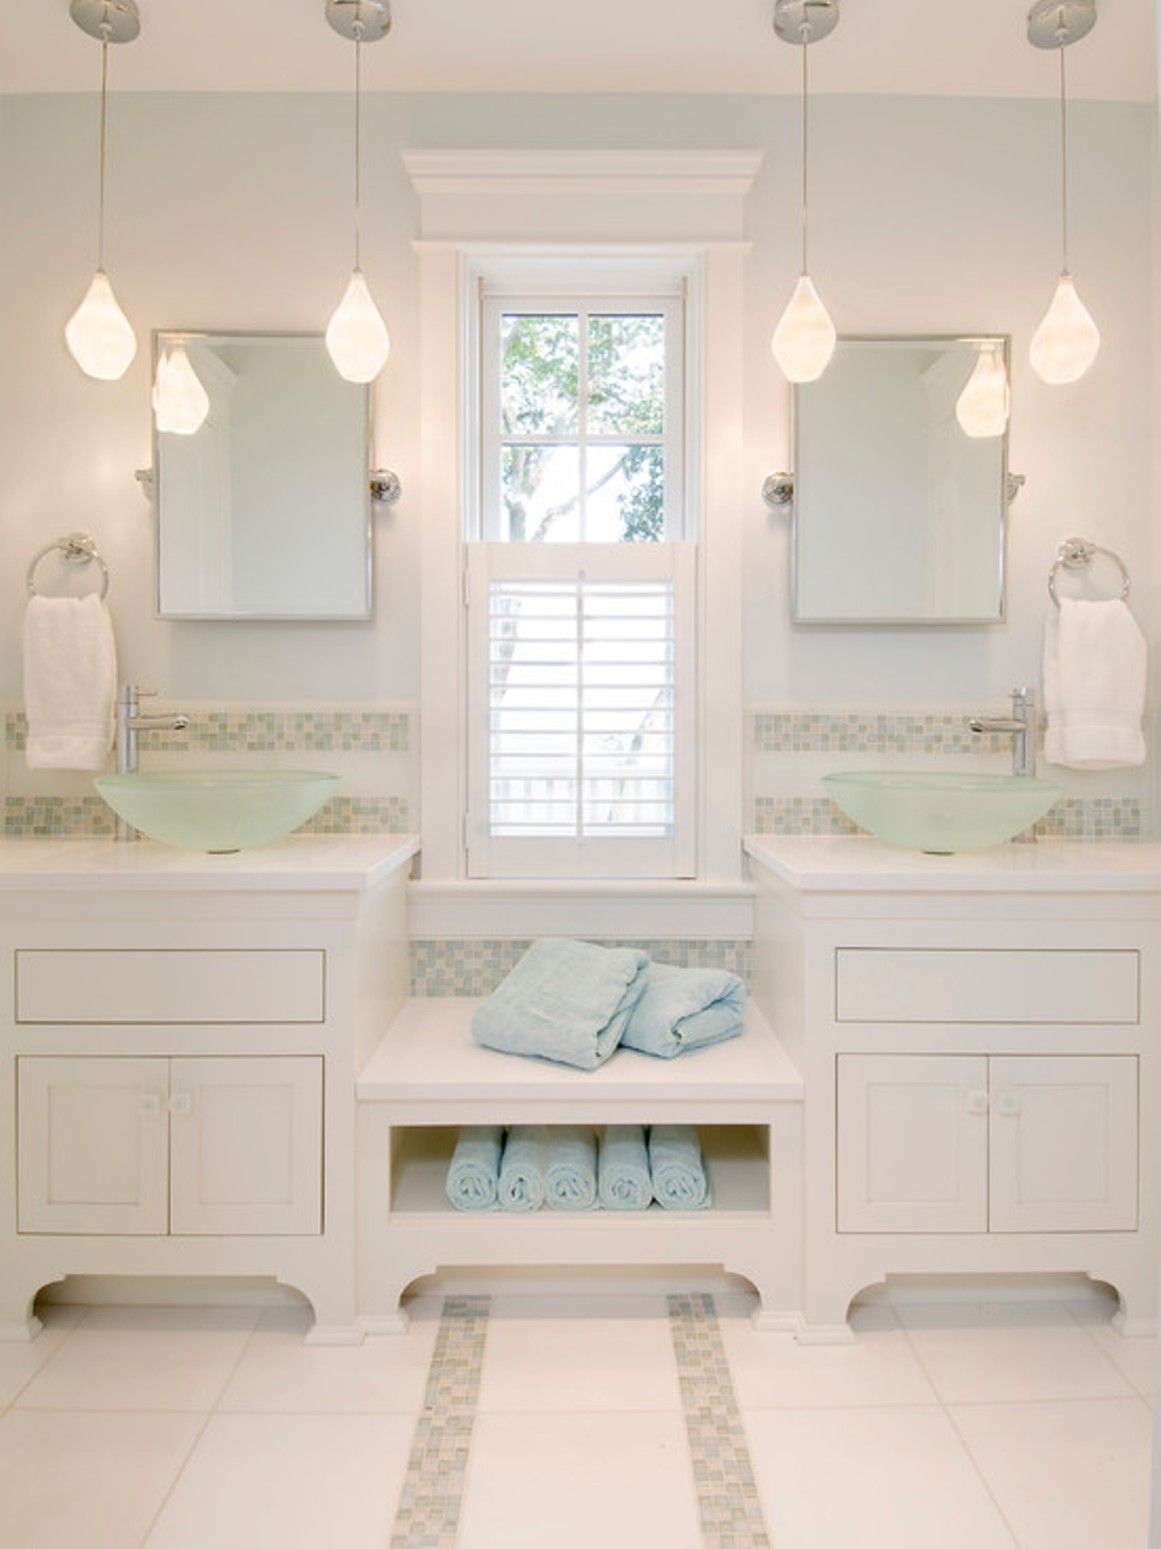 Modern bathroom vanity light fixtures - Bathroom Bathroom Vanity Lighting Fixtures Awesome Beach House Bathroom With White Bathroom Vanity Lighting